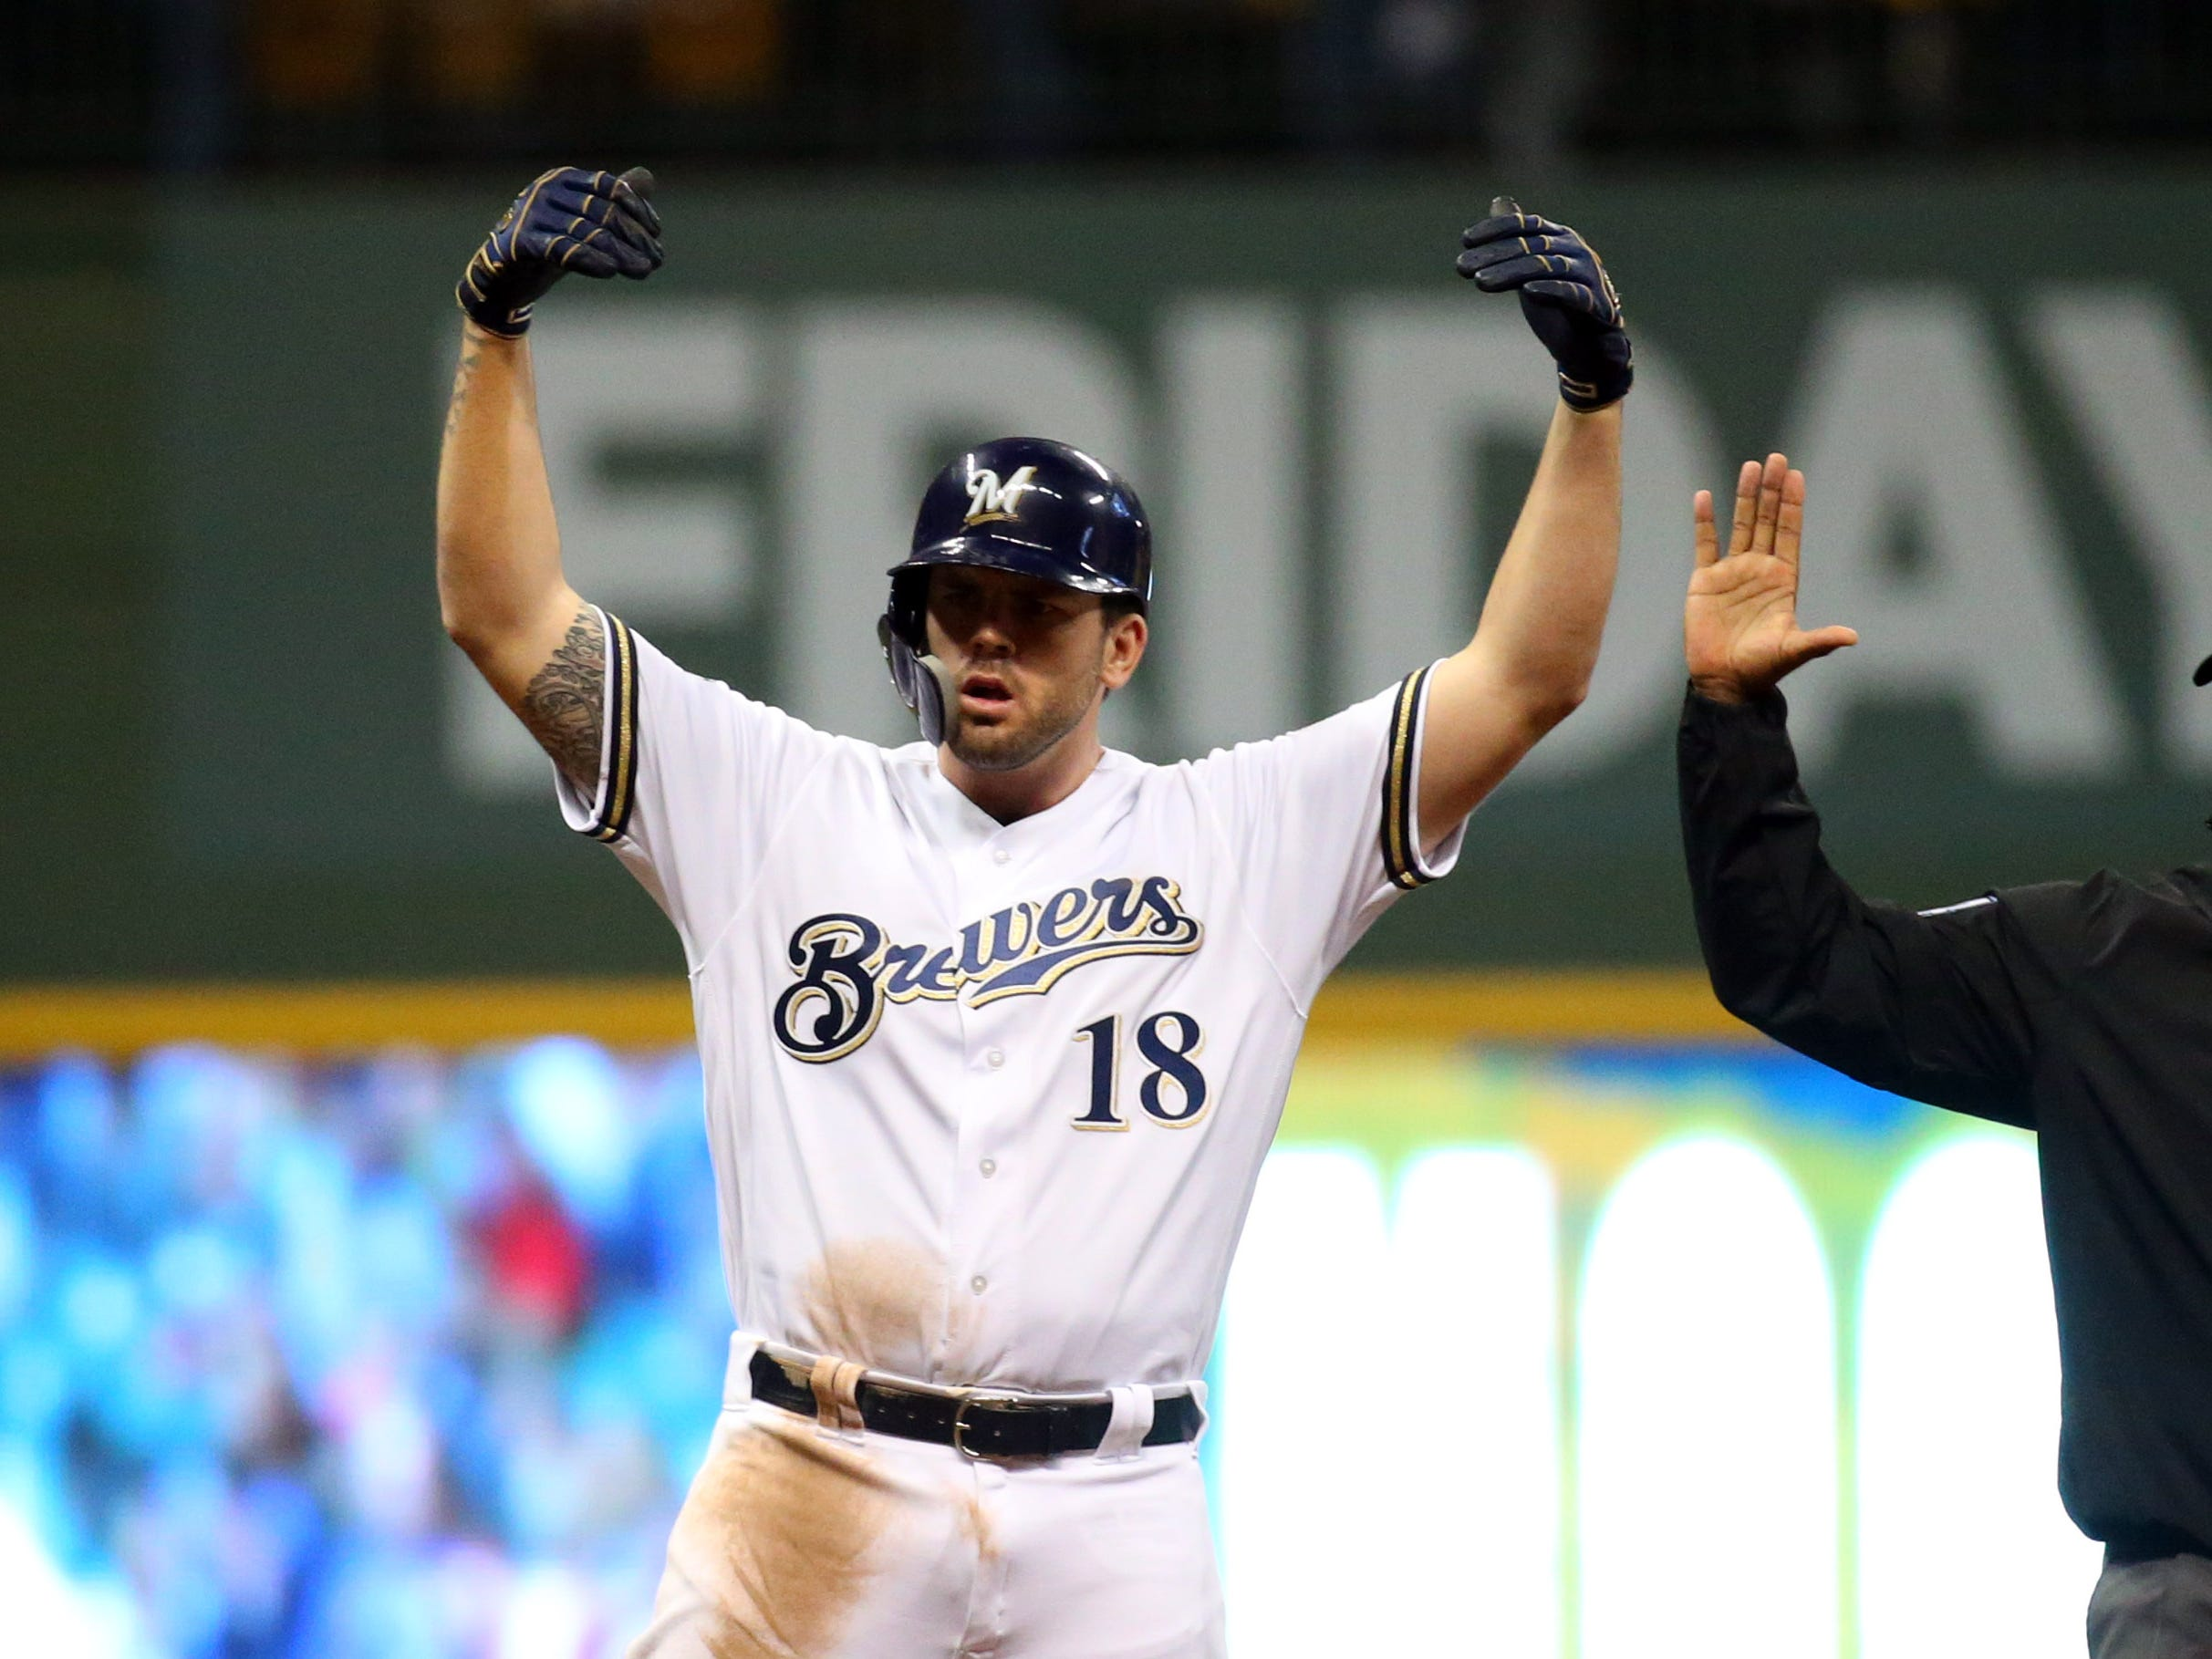 Mike Moustakas (30, 3B, Brewers)